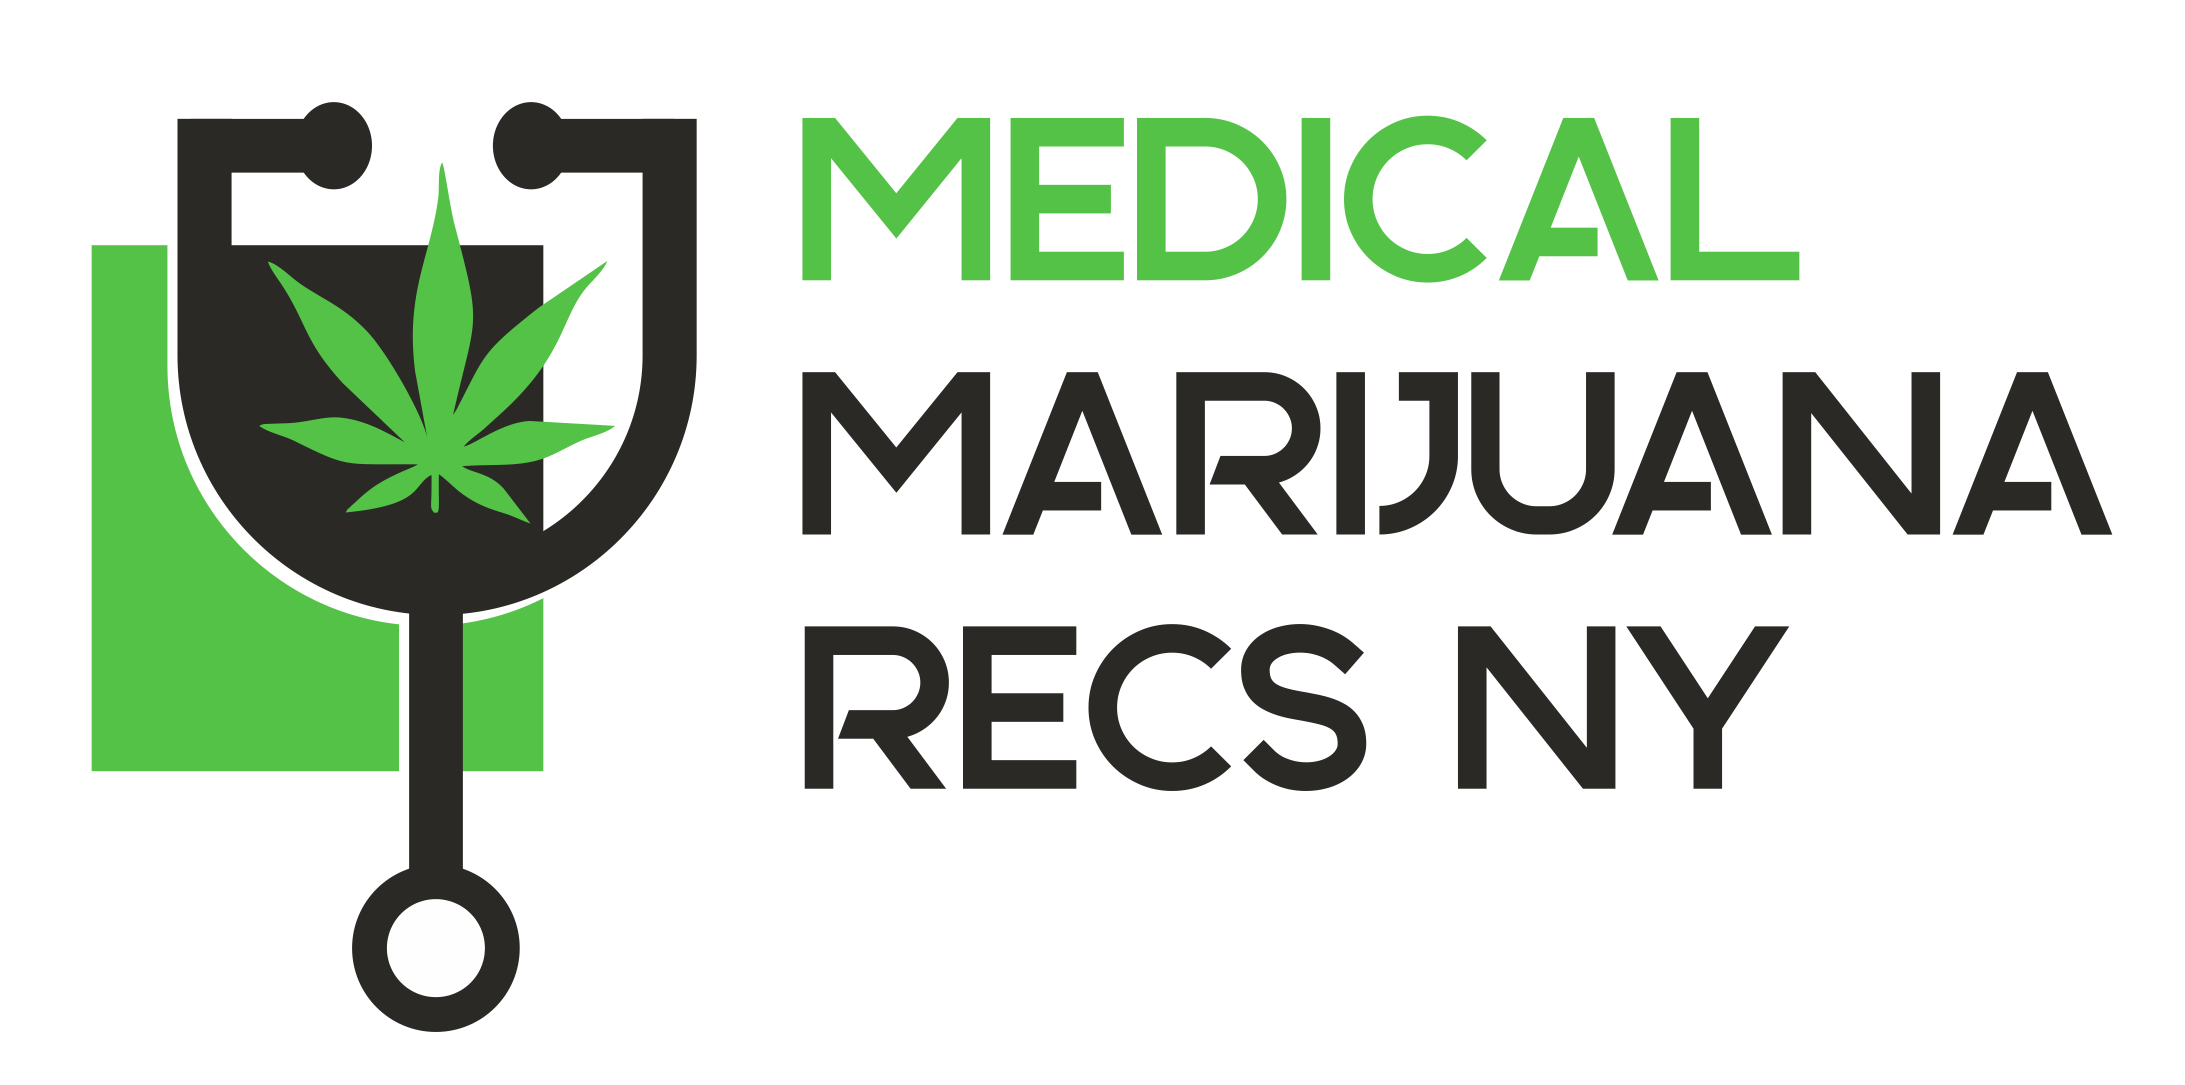 Medical Marijuana Recs NY Logo